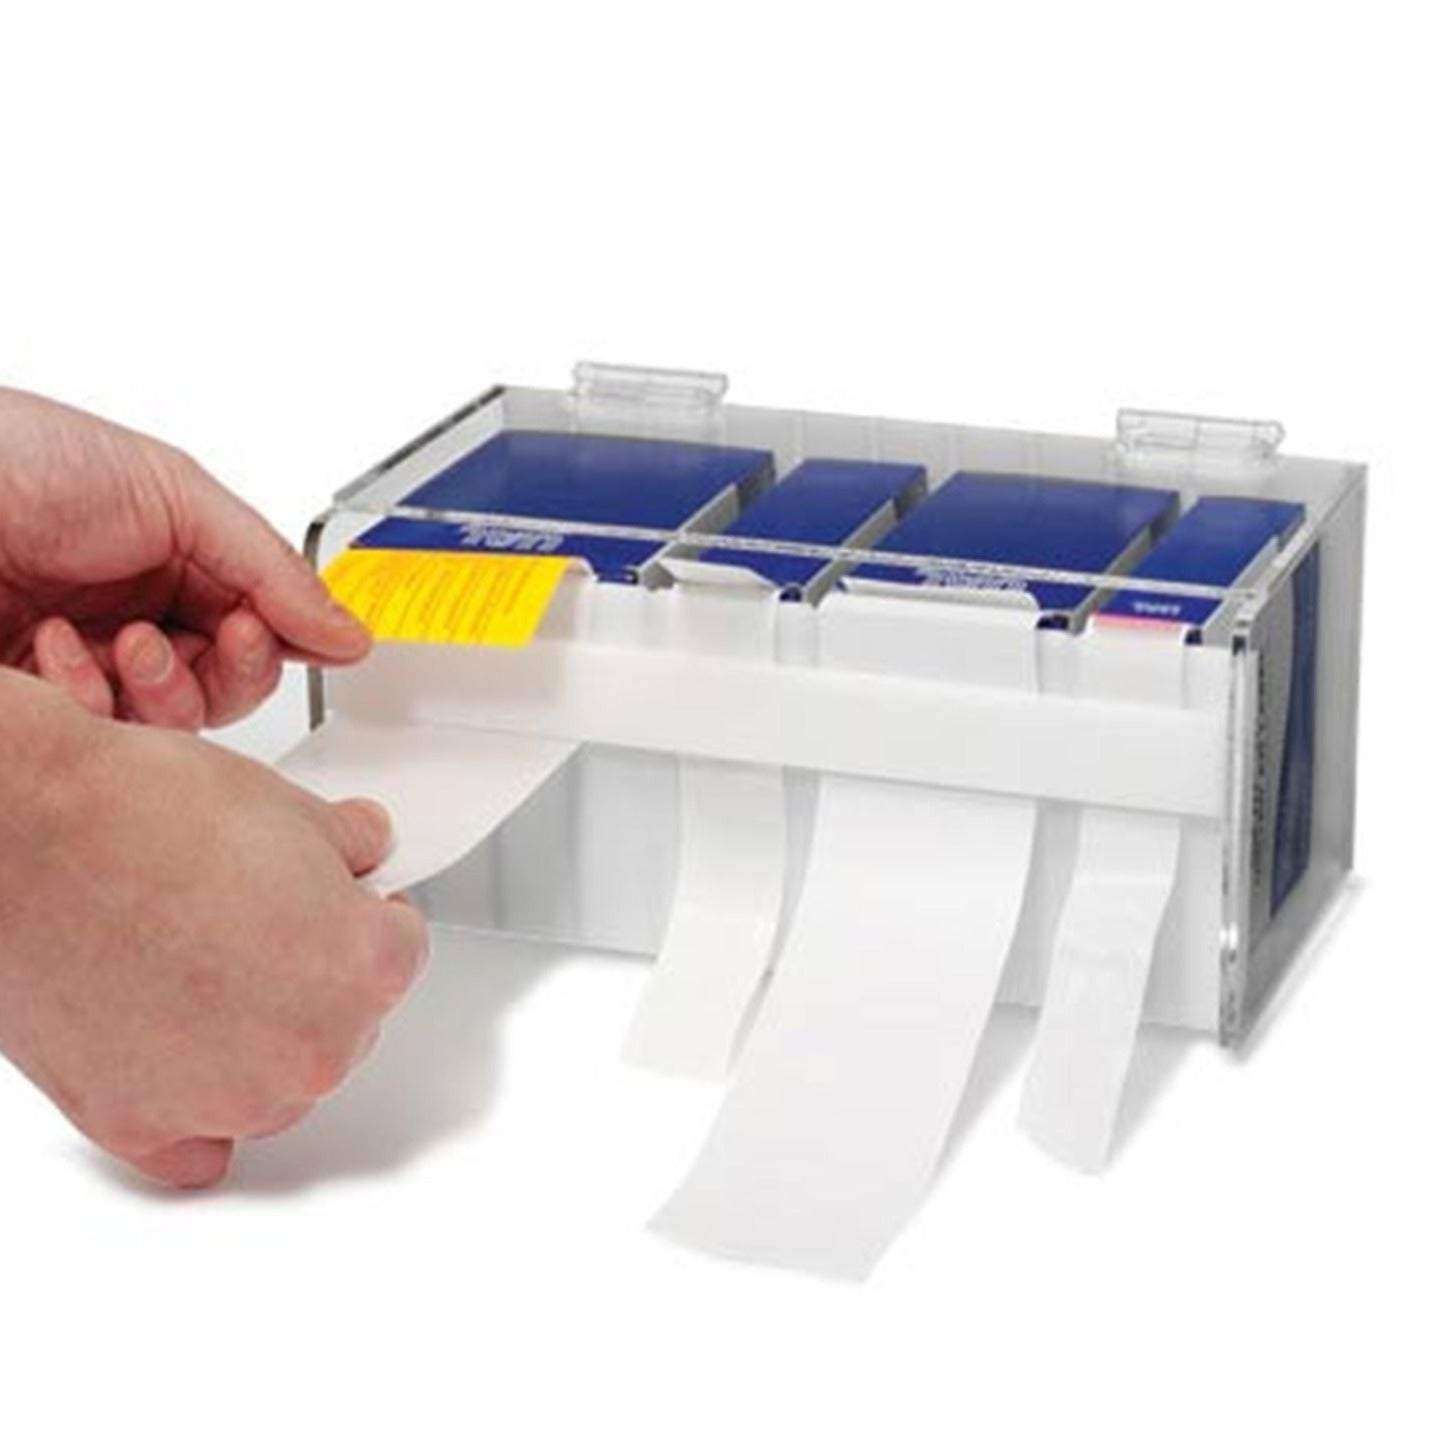 Small Label Dispenser with Slotted Front